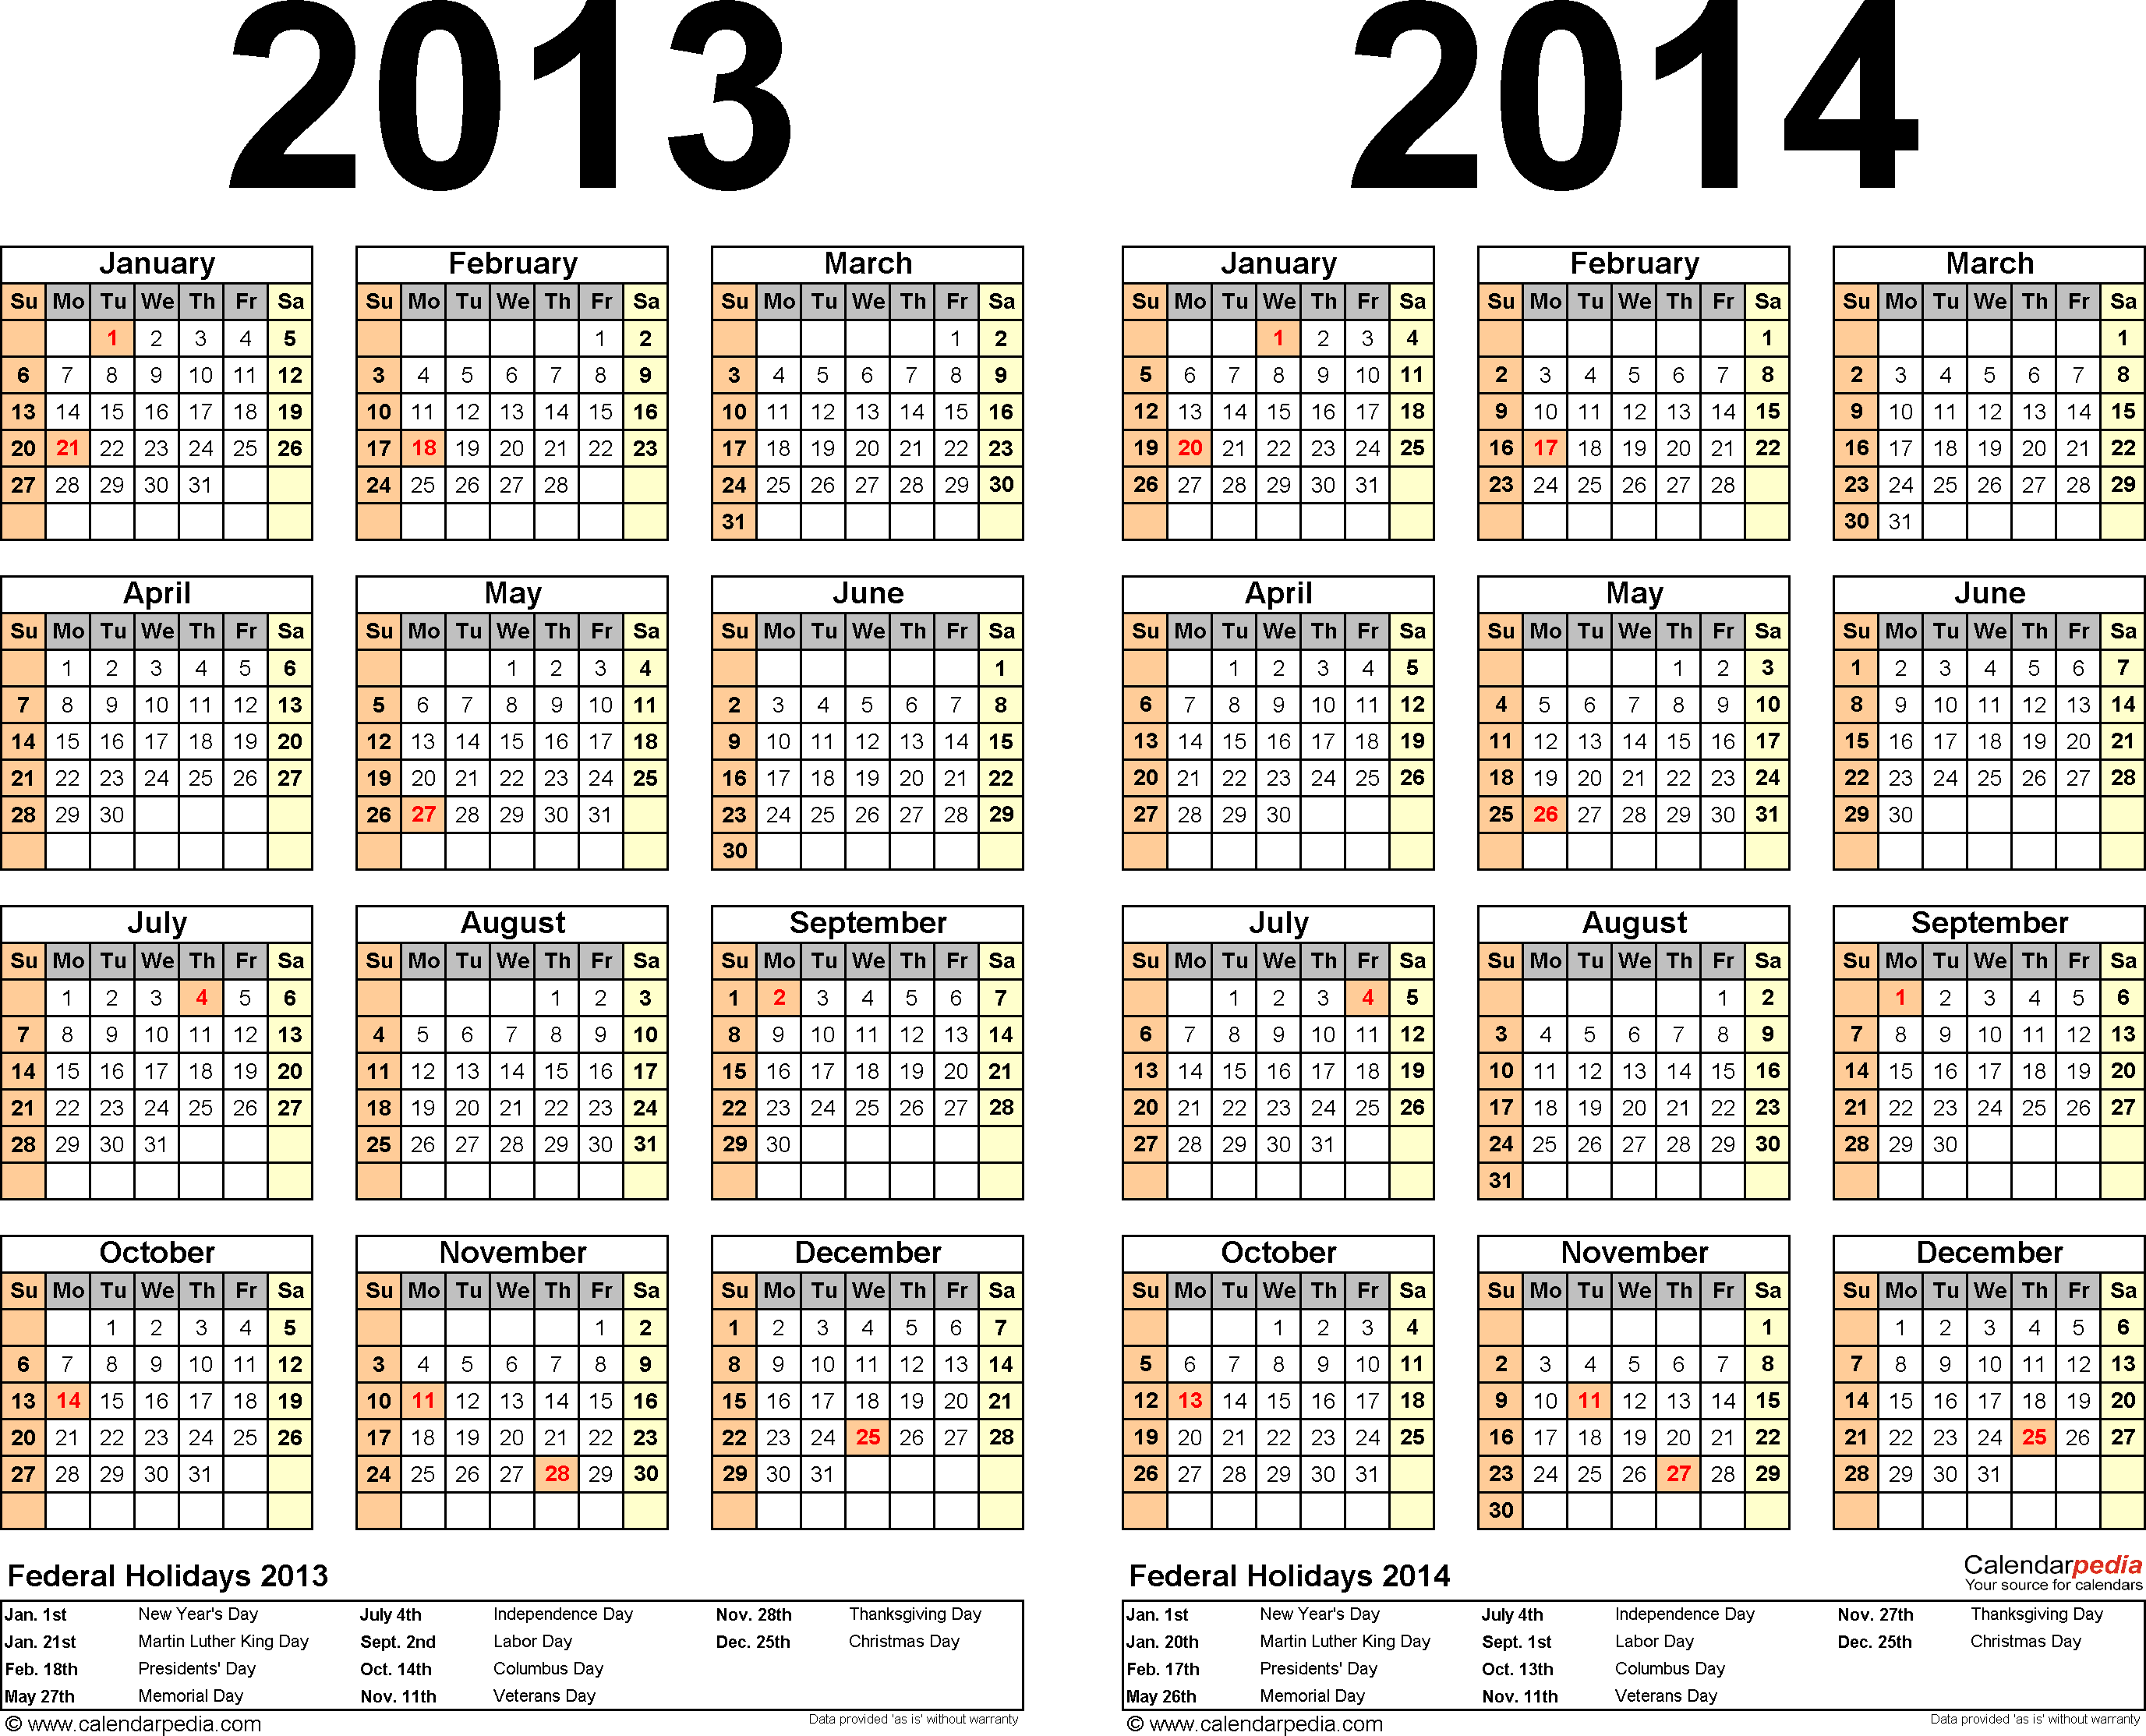 Template 2: Excel template for two year calendar 2013/2014 (landscape orientation, 1 page)